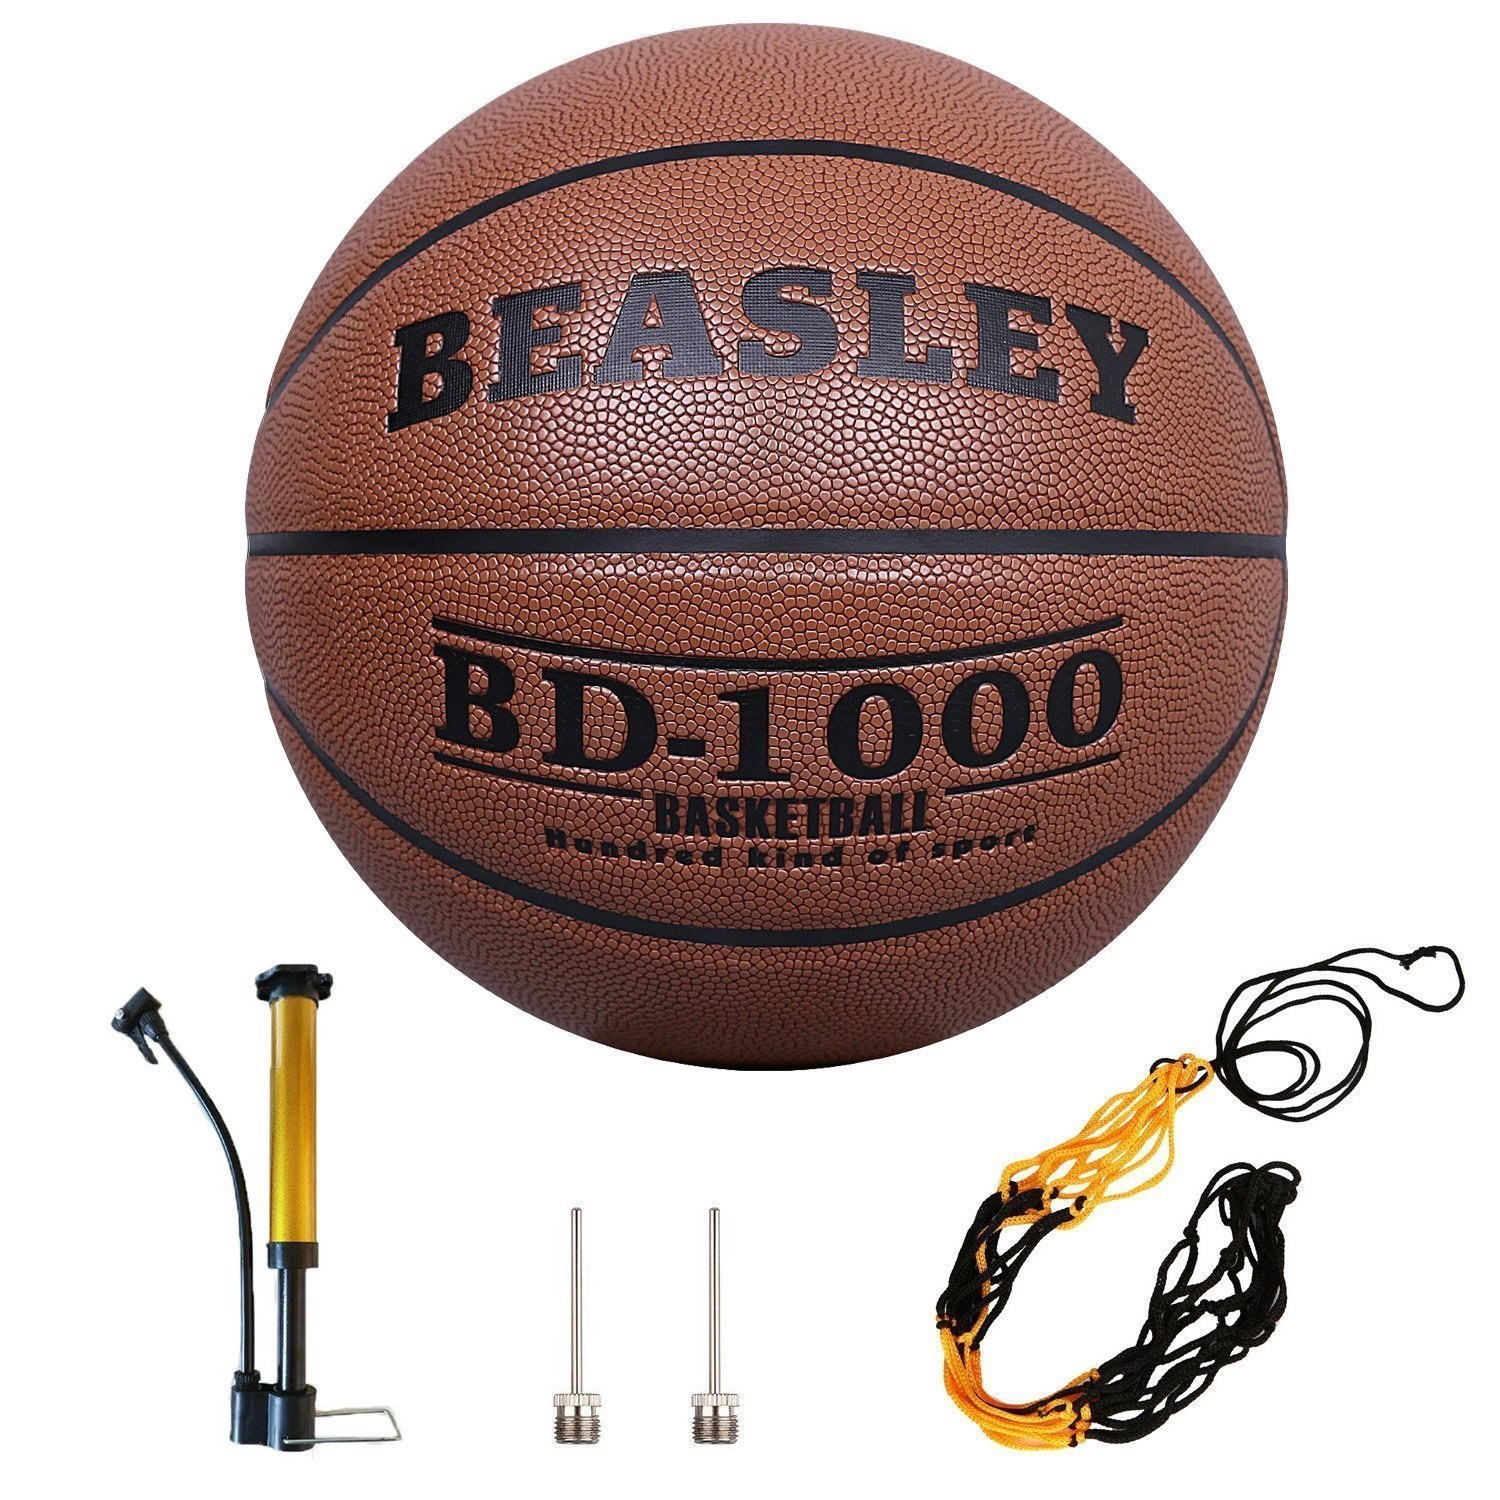 Daping Basketball Outdoor Indoor Official Size 29.5 Leather Basketballs Training Game Ball Street with Pump Needles Basketball Net Size 7